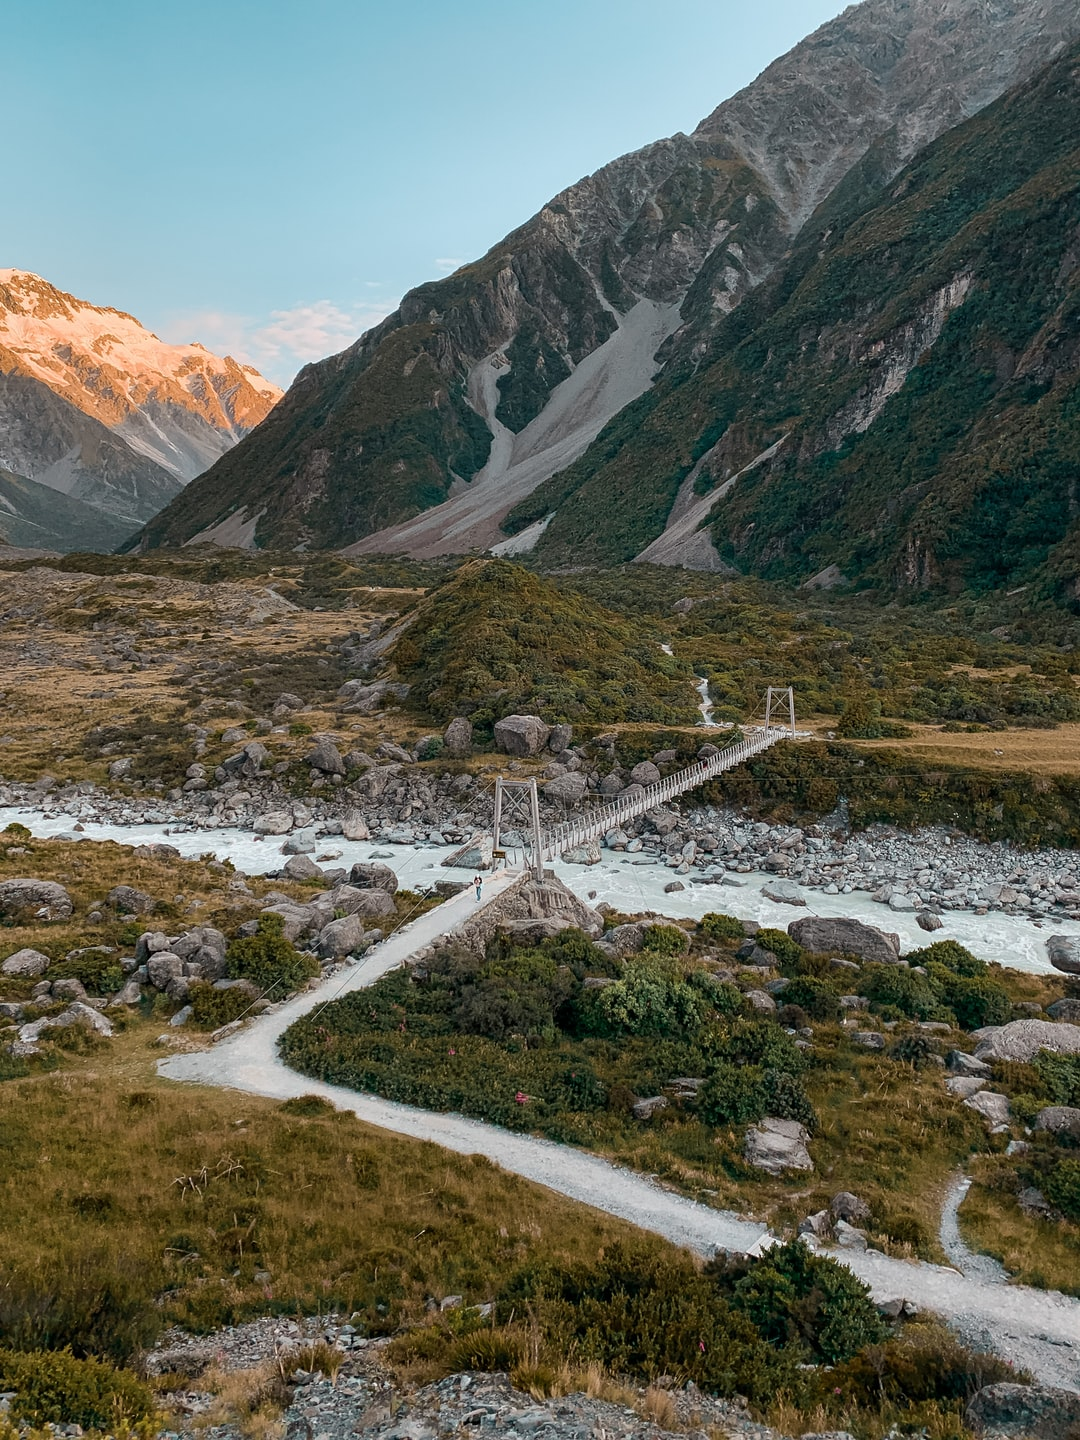 A picture perfect sunrise over the Hooker Valley Track.